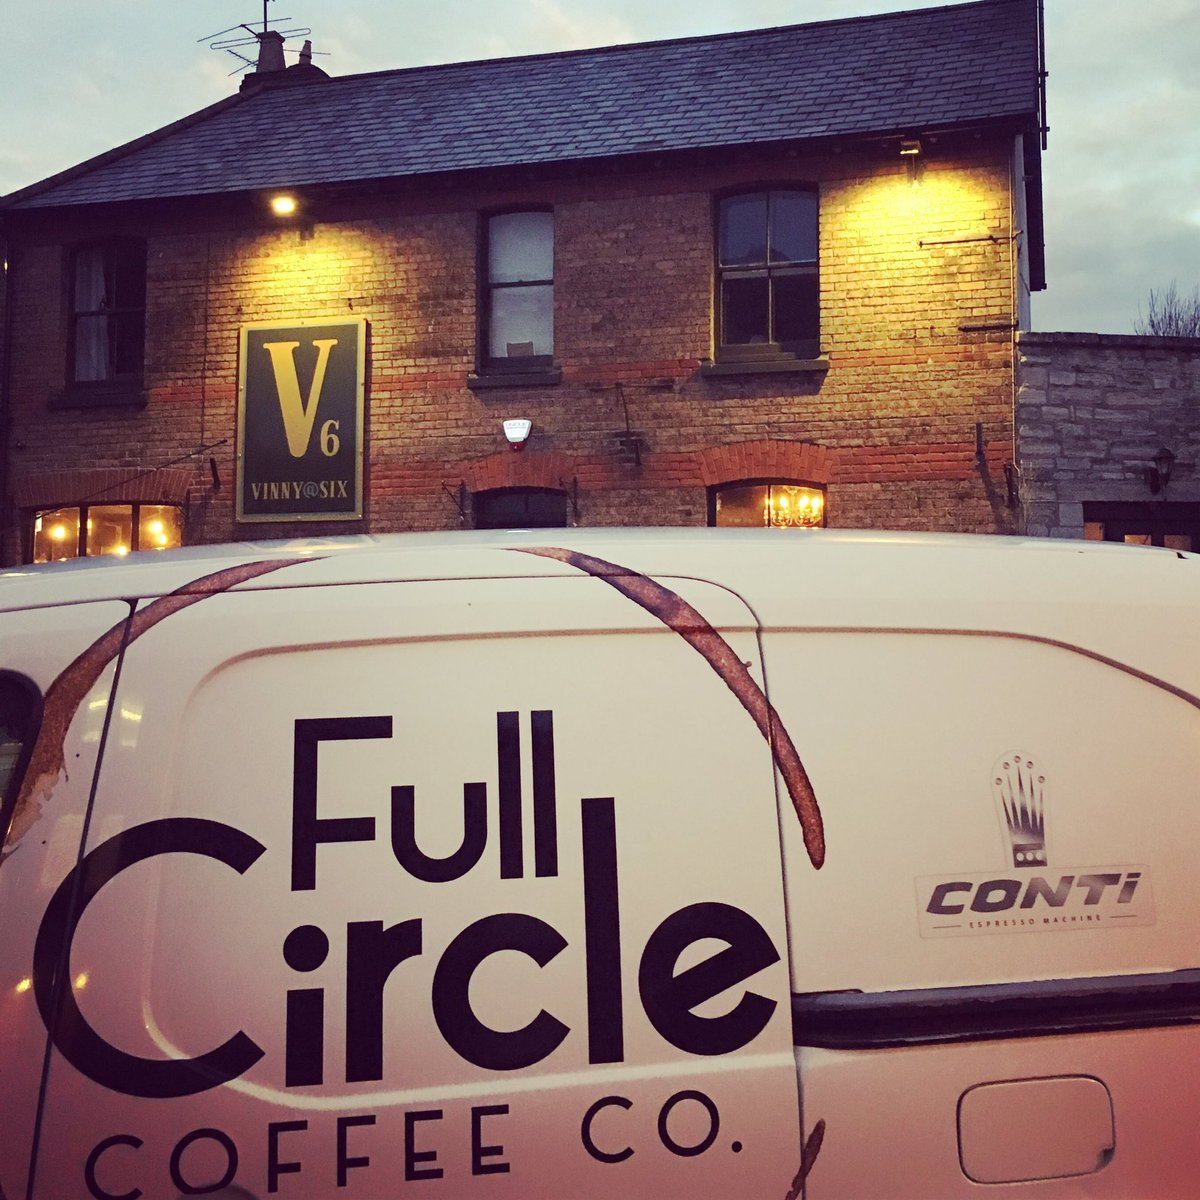 Another fresh delivery to @Vinnyatsix in Dorchester! Now the new year is underway we will be looking to book in another coffee infused evening in the near future! Watch this space ☕️  #Coffee #Event #Delivery #Dorchester #Resturant #Cocktails #Espresso #Dorset #Food #Foodie